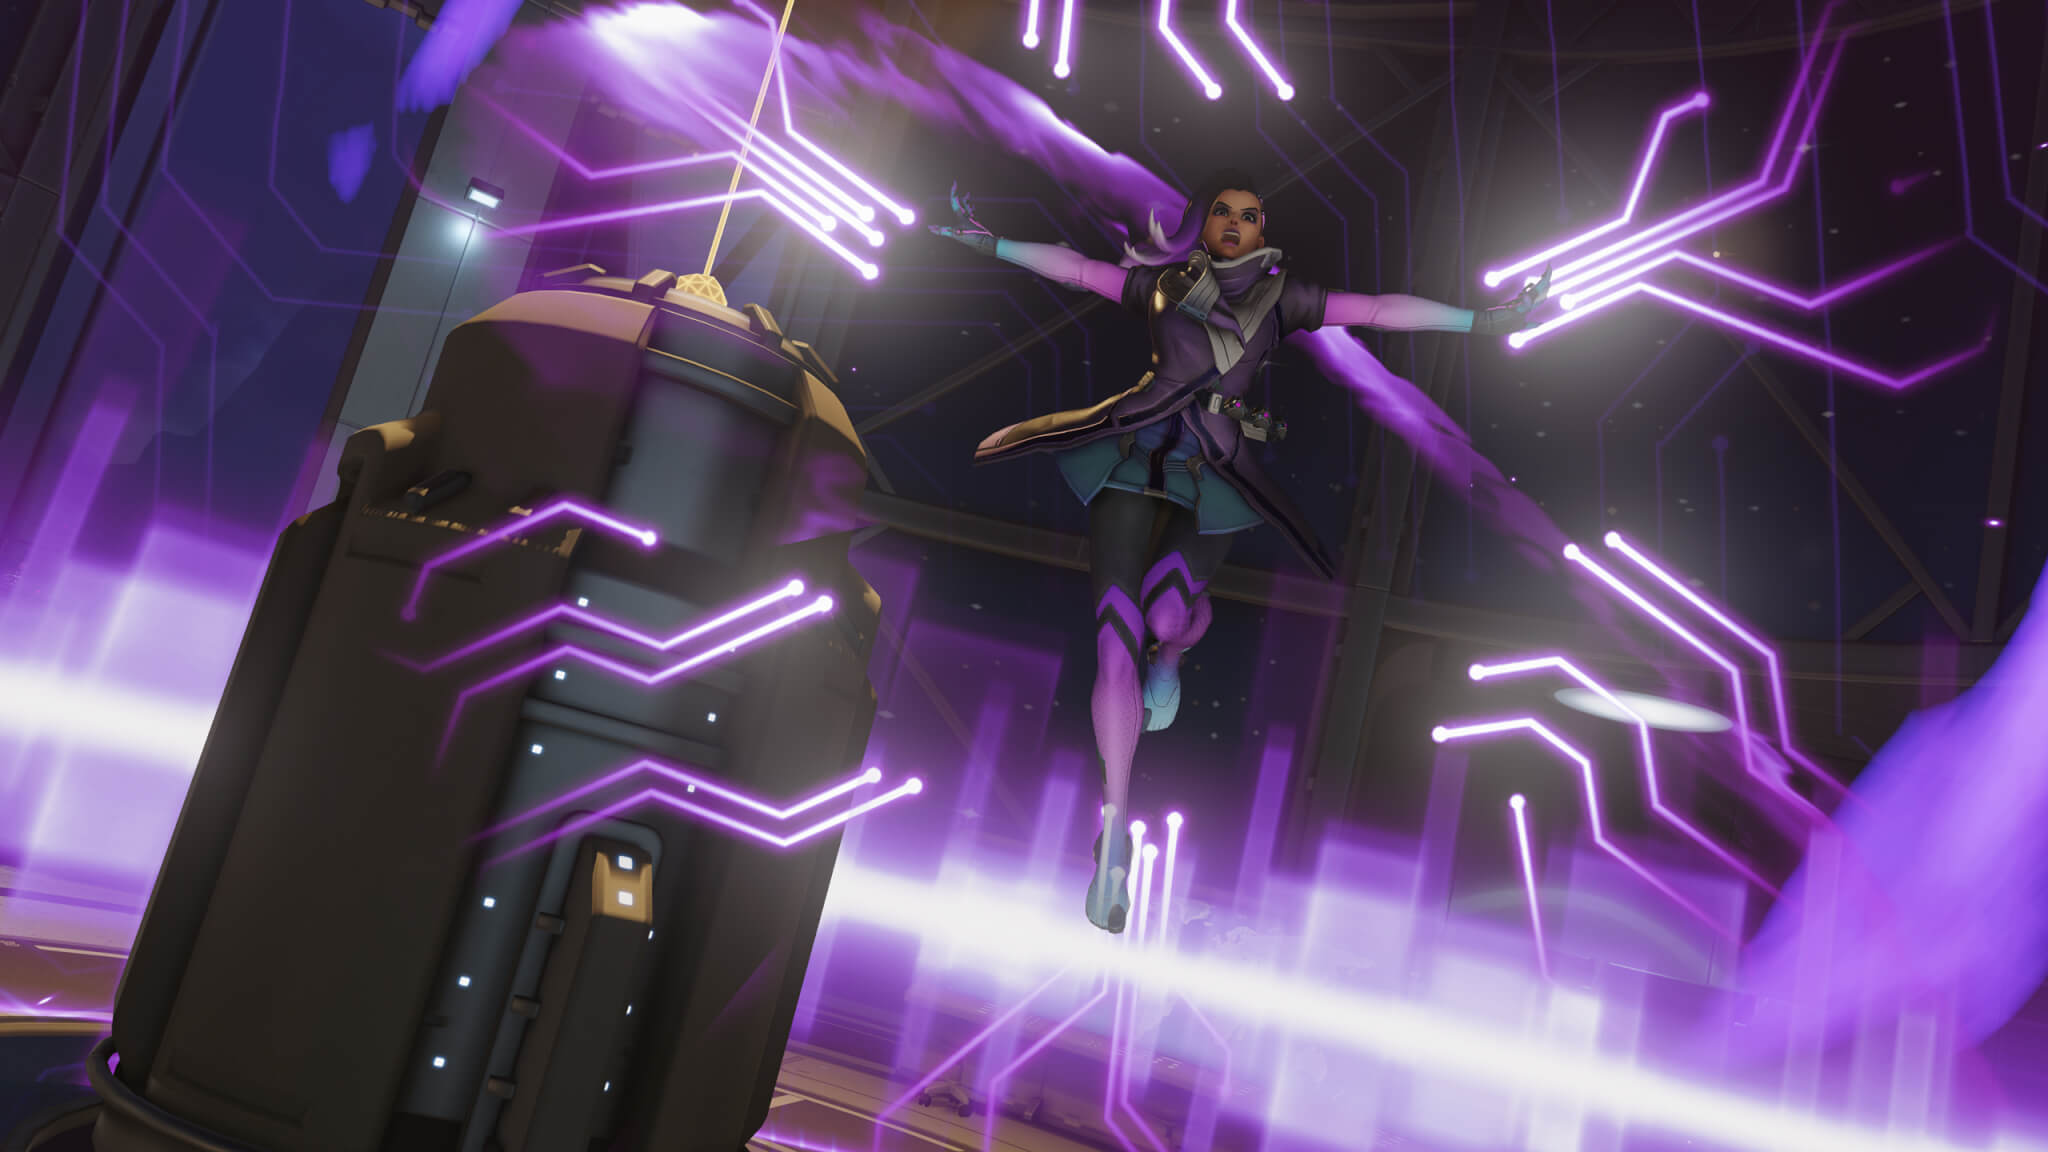 Sombra seems like a powerful and interesting new character.